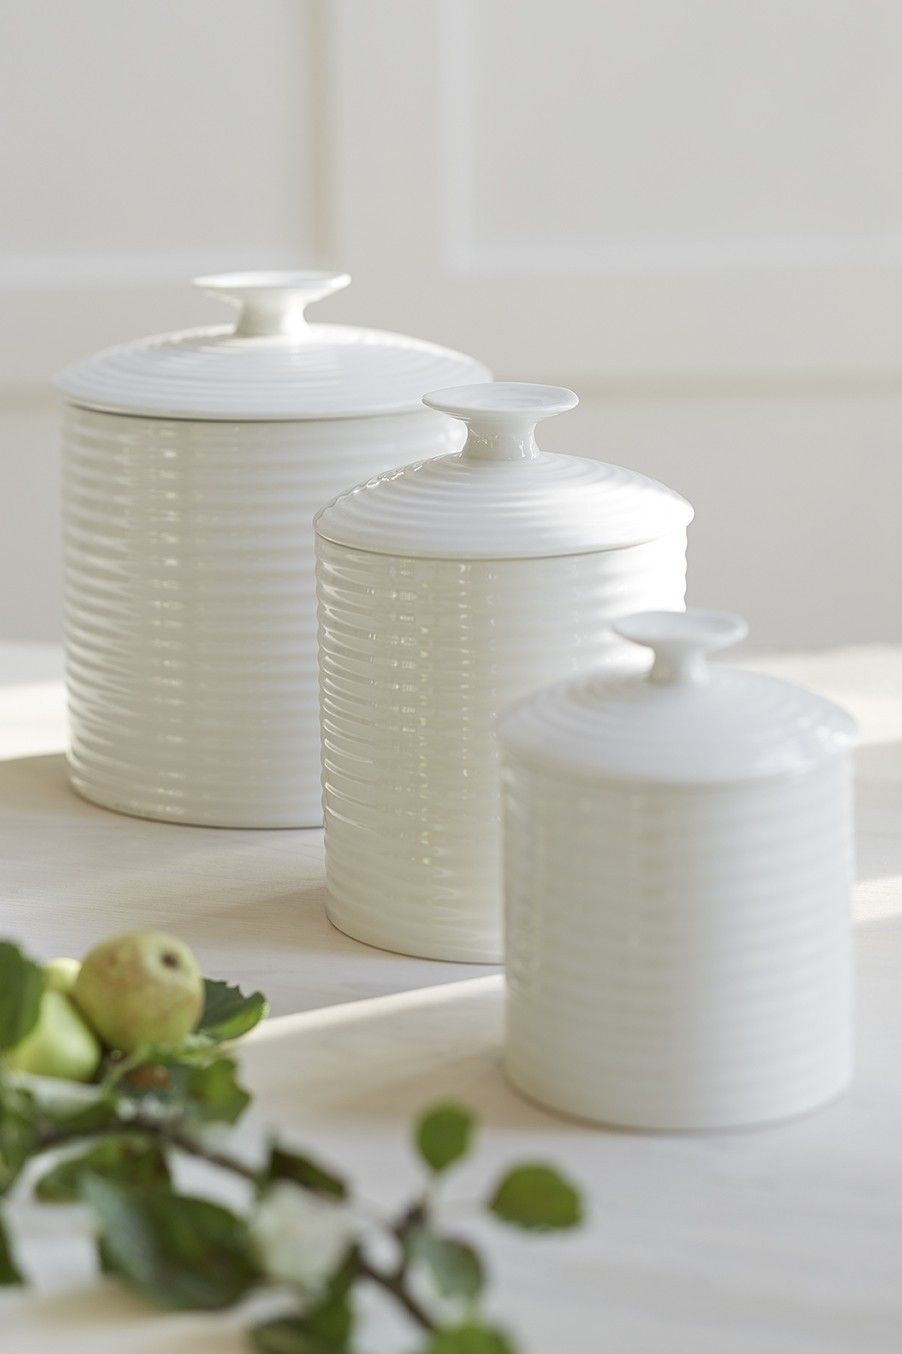 China Kitchen Palm Beach Gardens White Ceramic Storage Jars White China Kitchen Dining